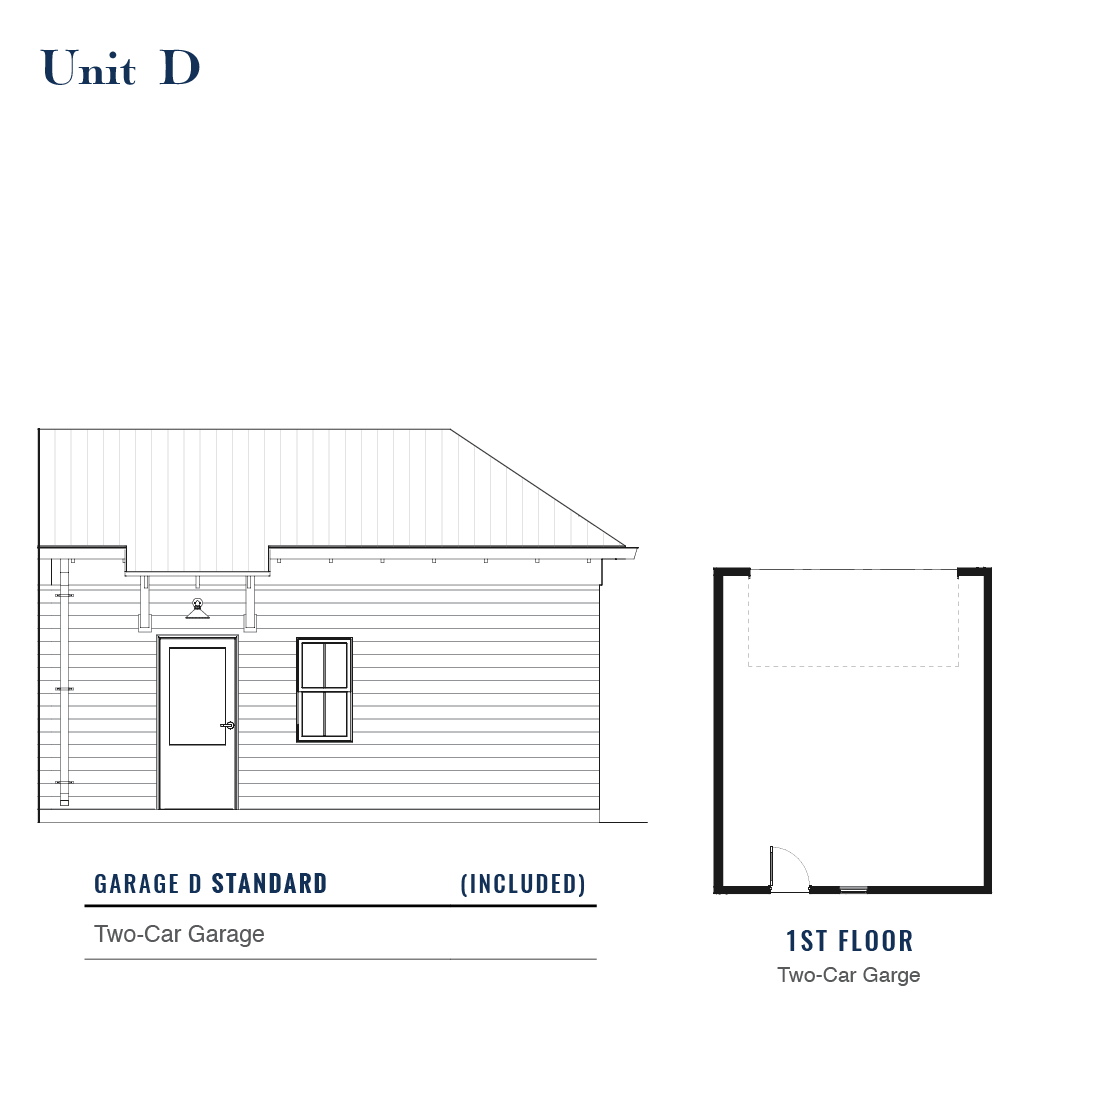 Unit D Standard Garage | East Wilbur LiveWorks, Downtown Lake Mary